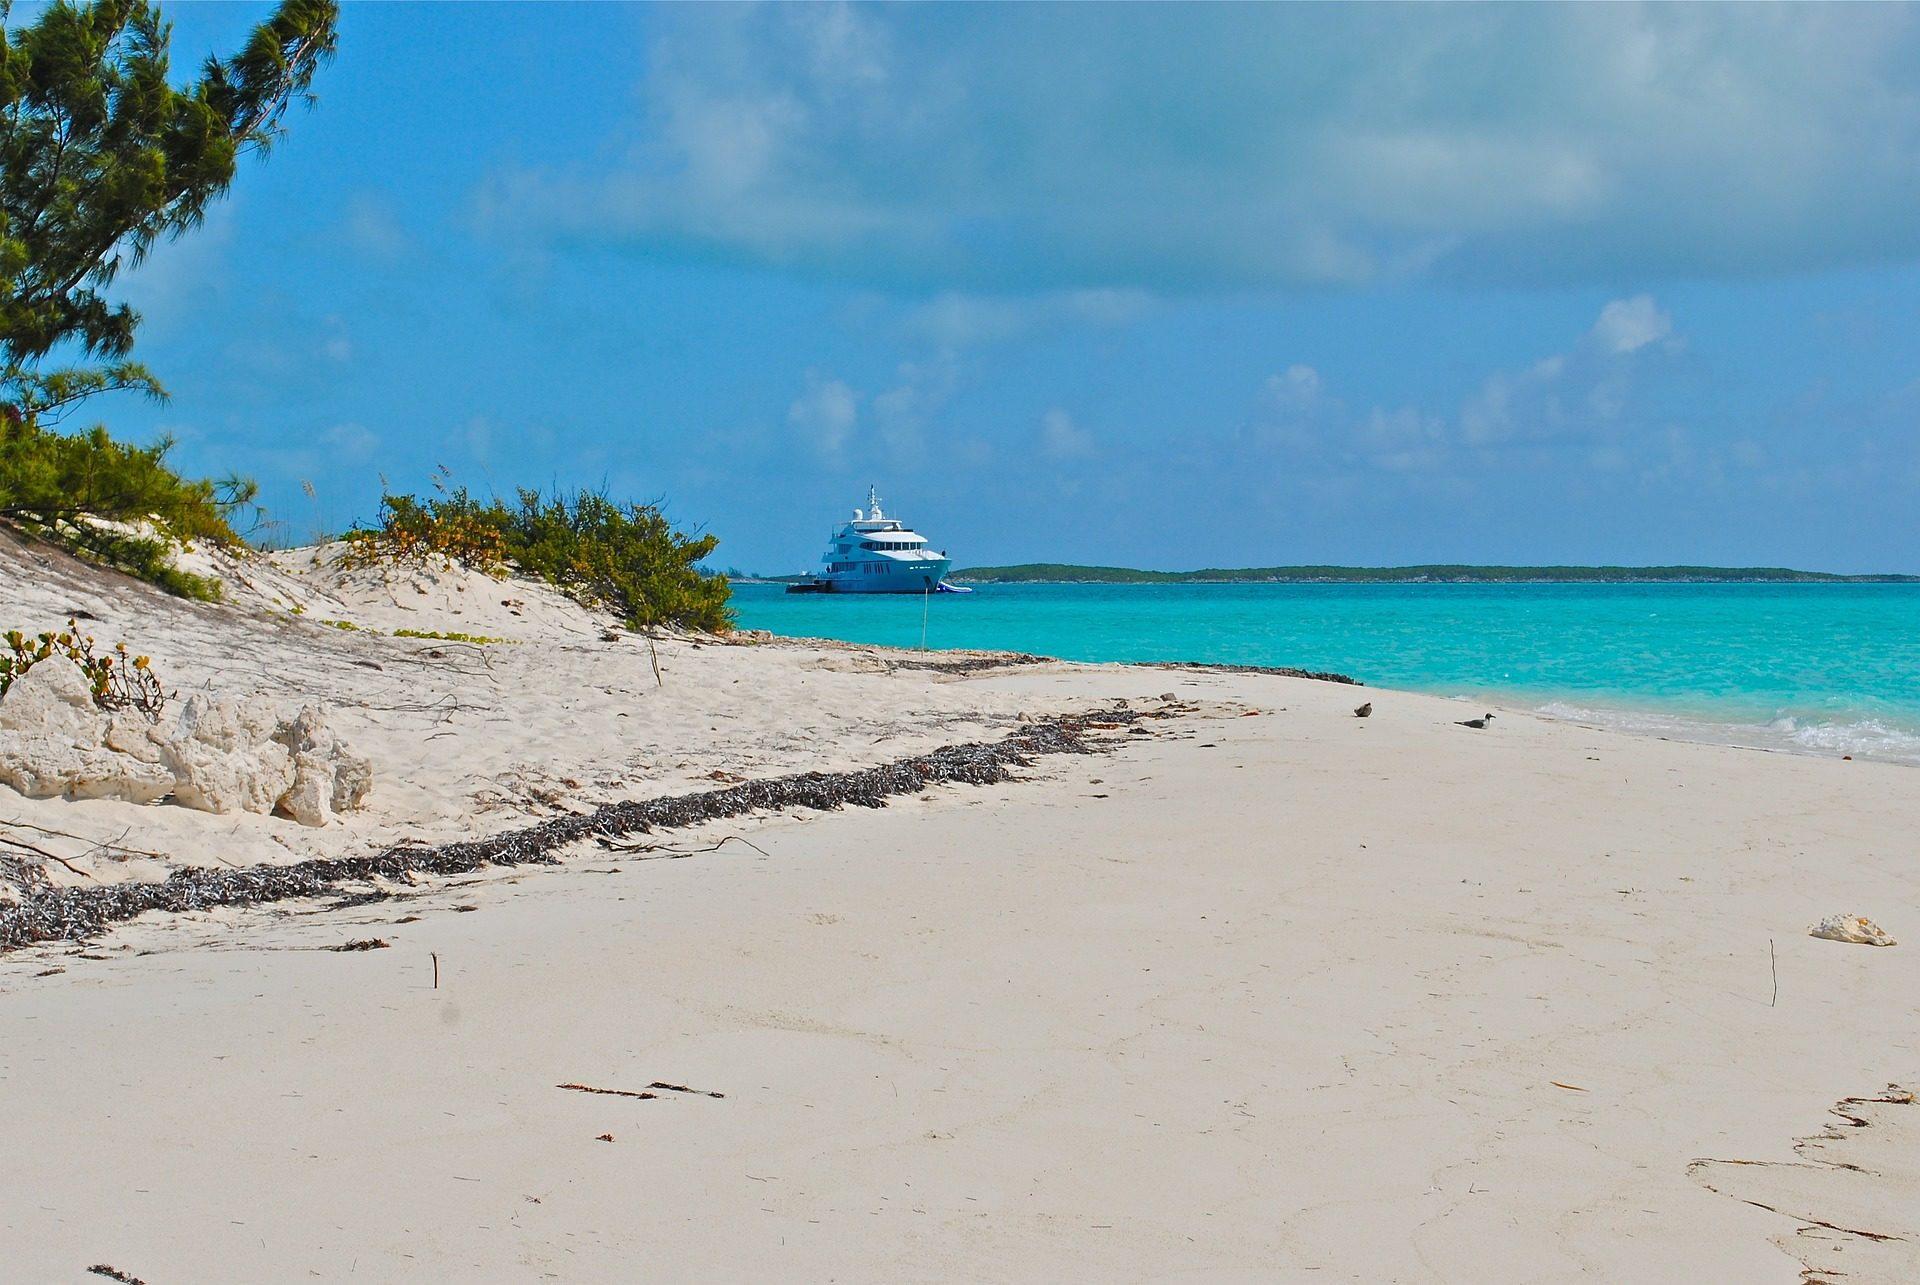 Superyacht in distance with white sand beach in foreground. Image by Lisa Larsen from Pixabay